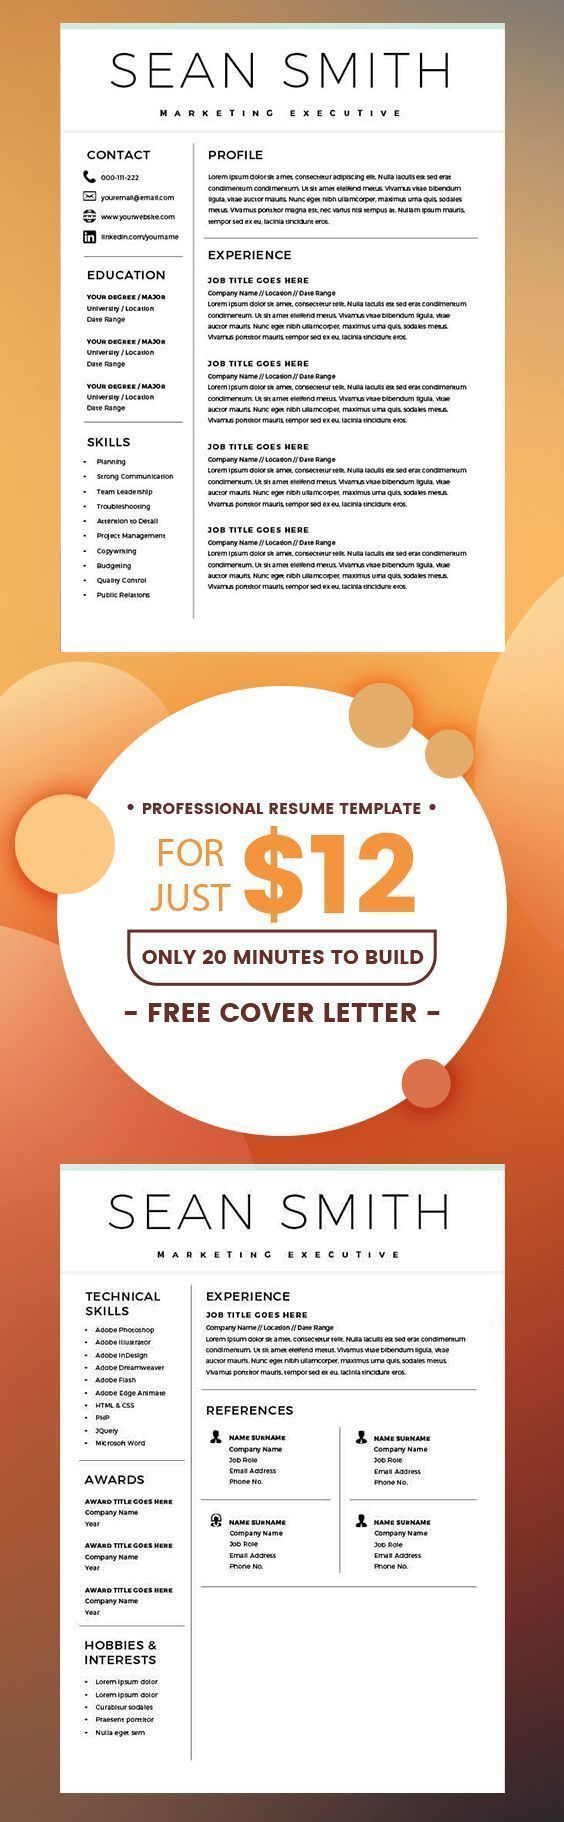 25 pinterest word resume template resume template for word cover letter microsoft word on mac yelopaper Gallery